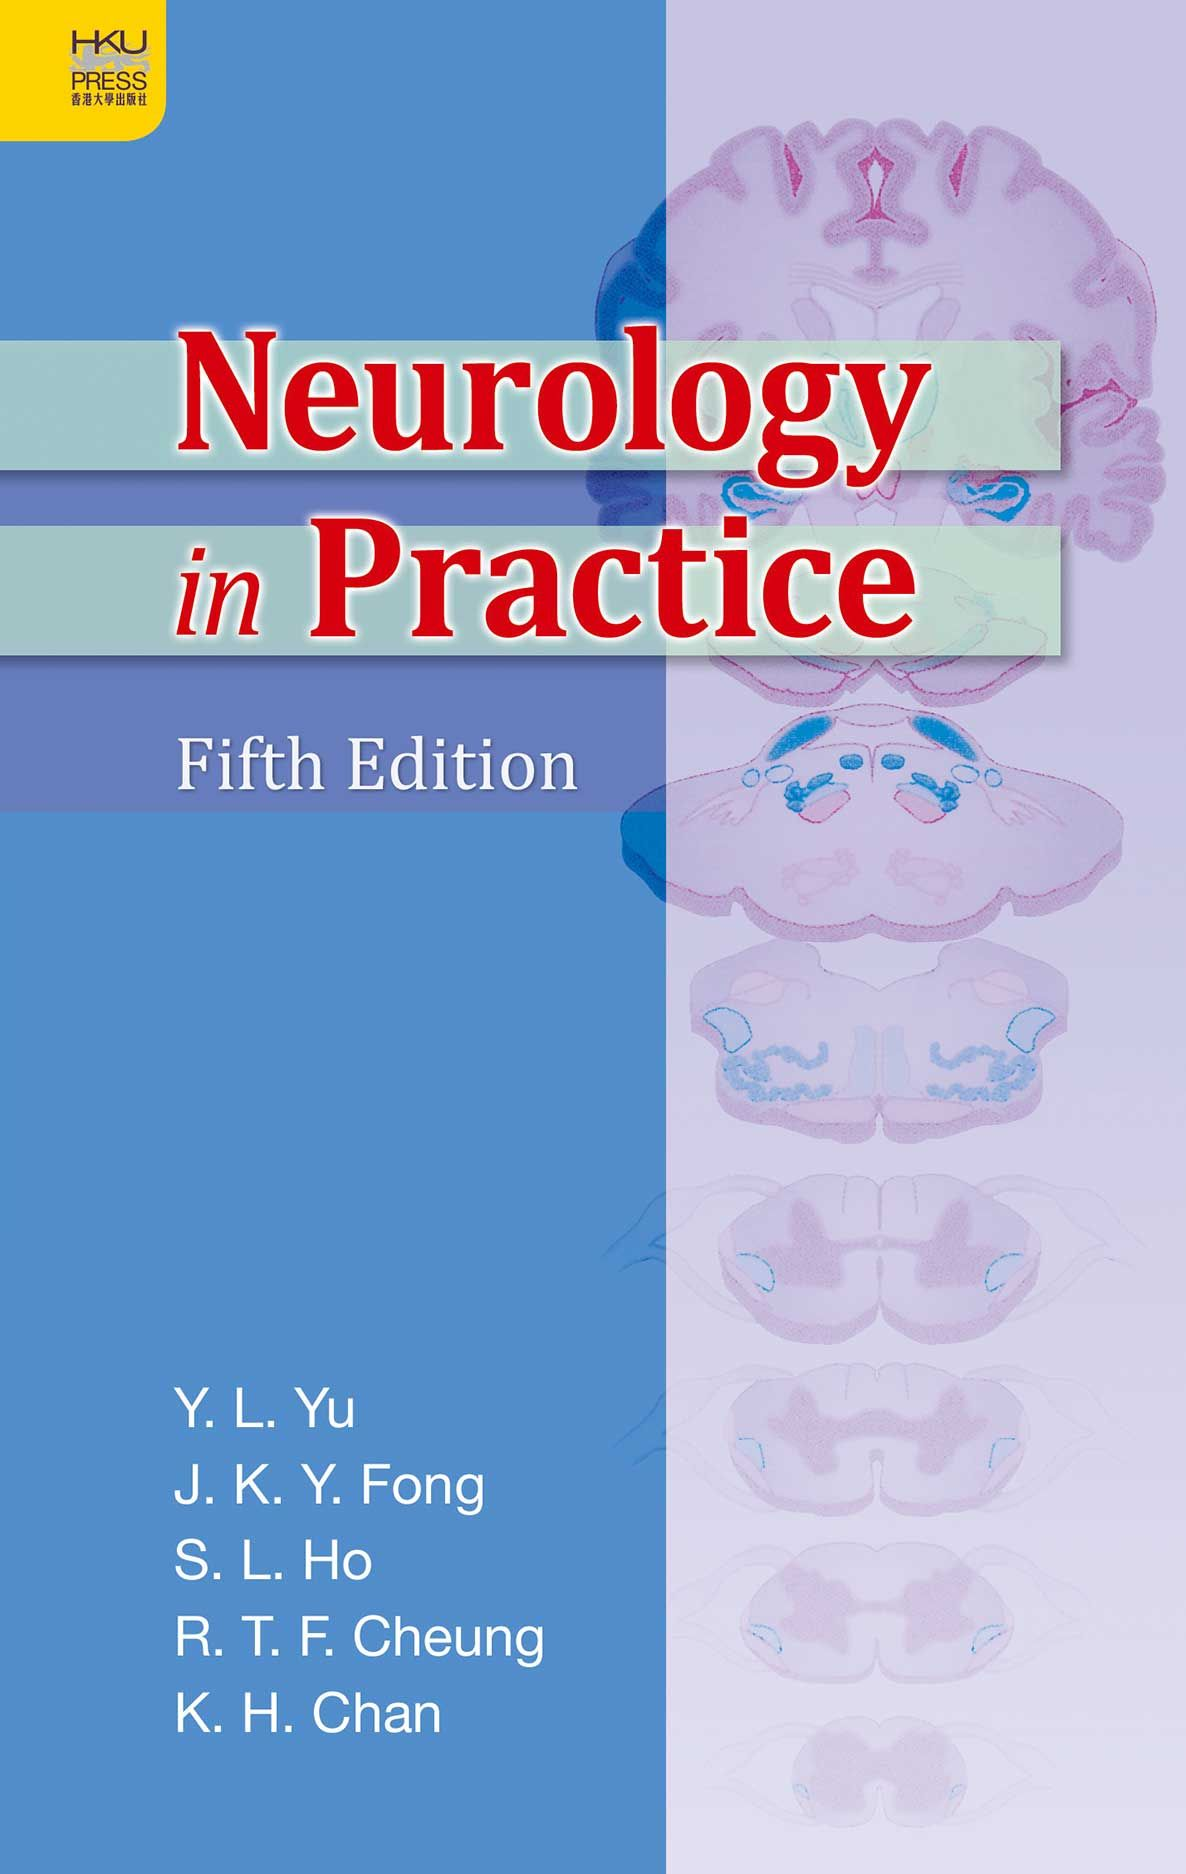 Neurology in Practice, Fifth Edition